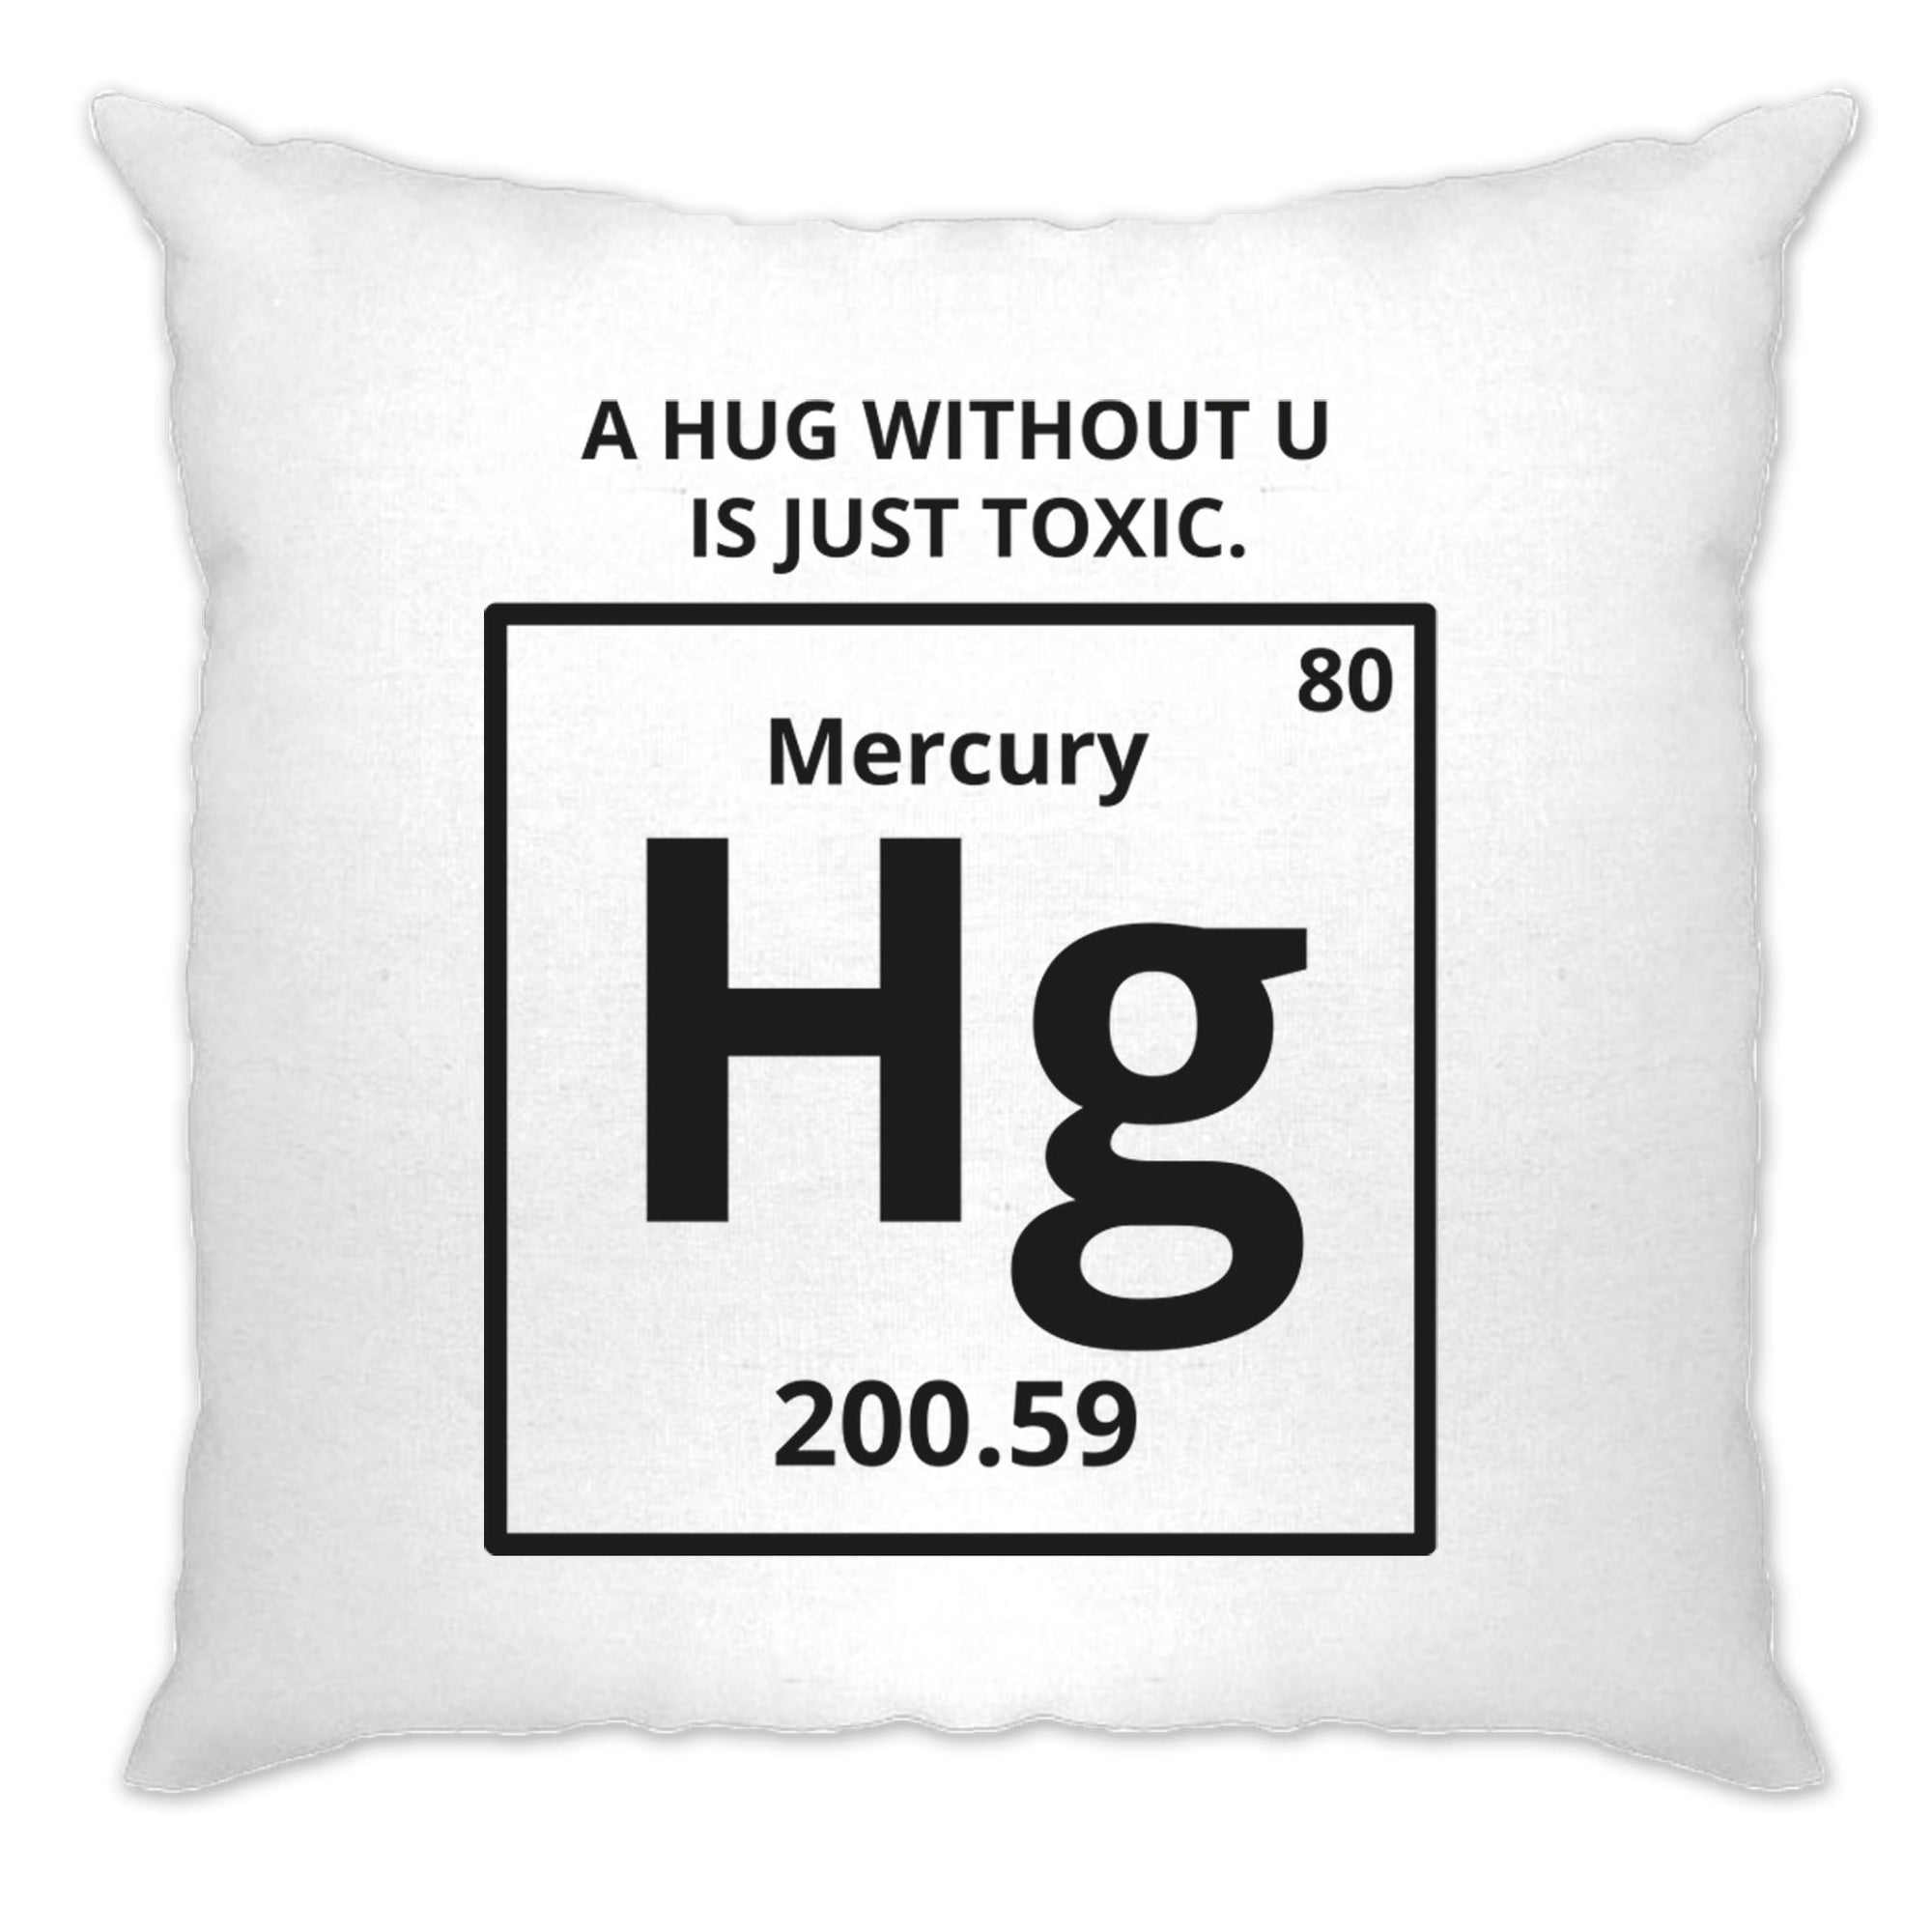 Funny Science Cushion Cover Mercury Hug Chemistry Joke